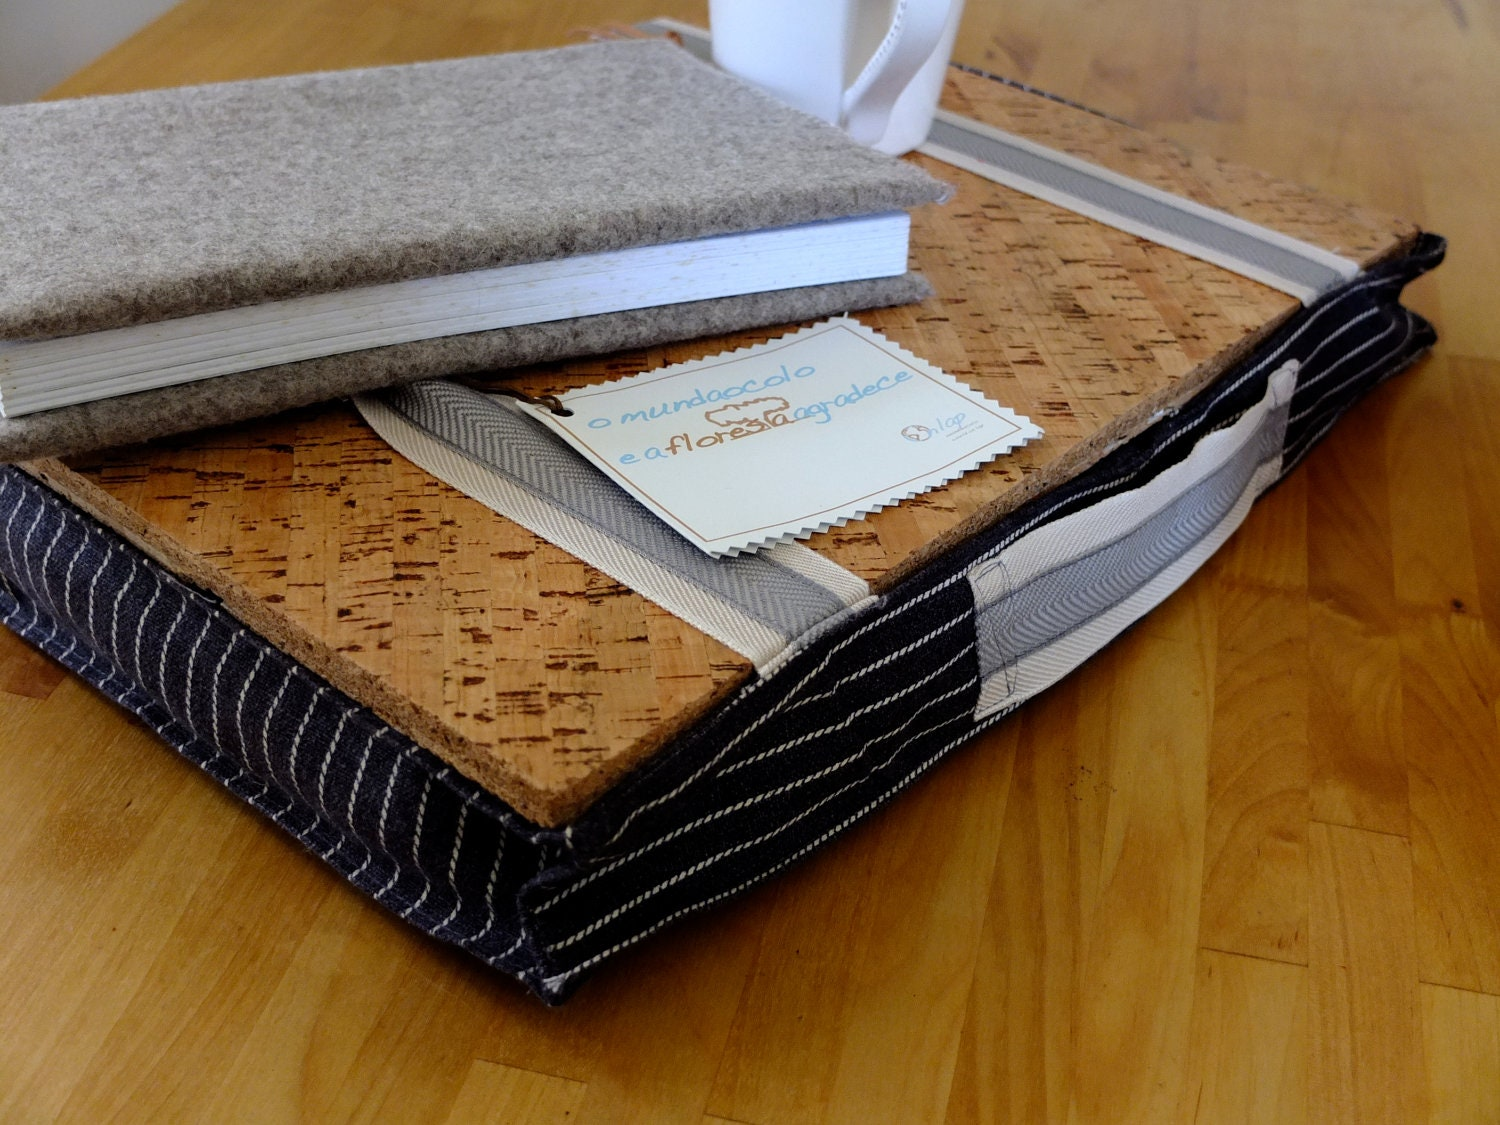 Eco friendly Lap desk laptop pillow with cork tray by